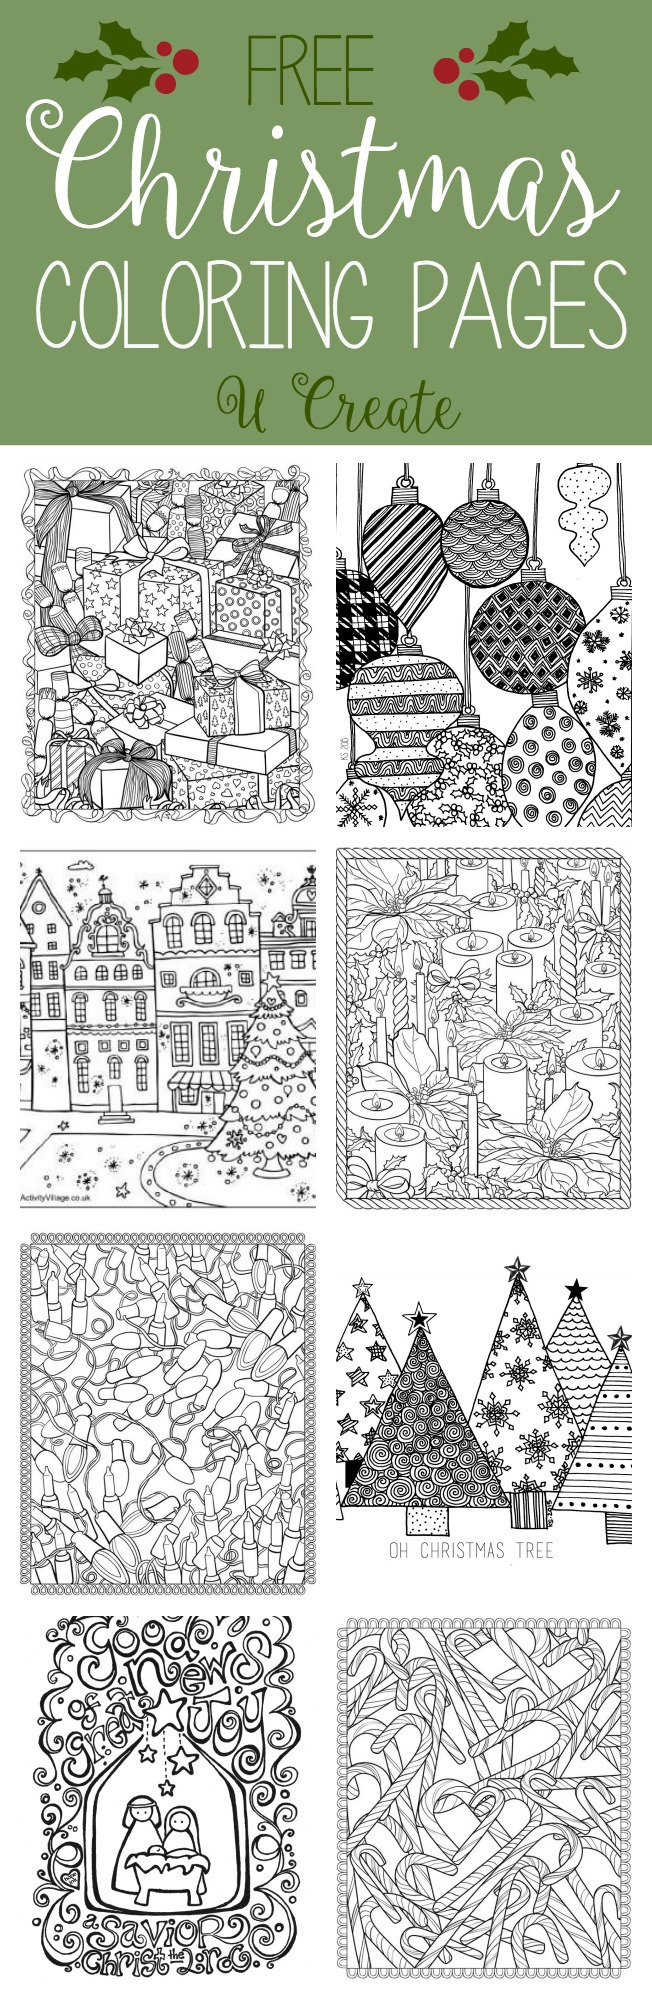 free christmas coloring pages u create